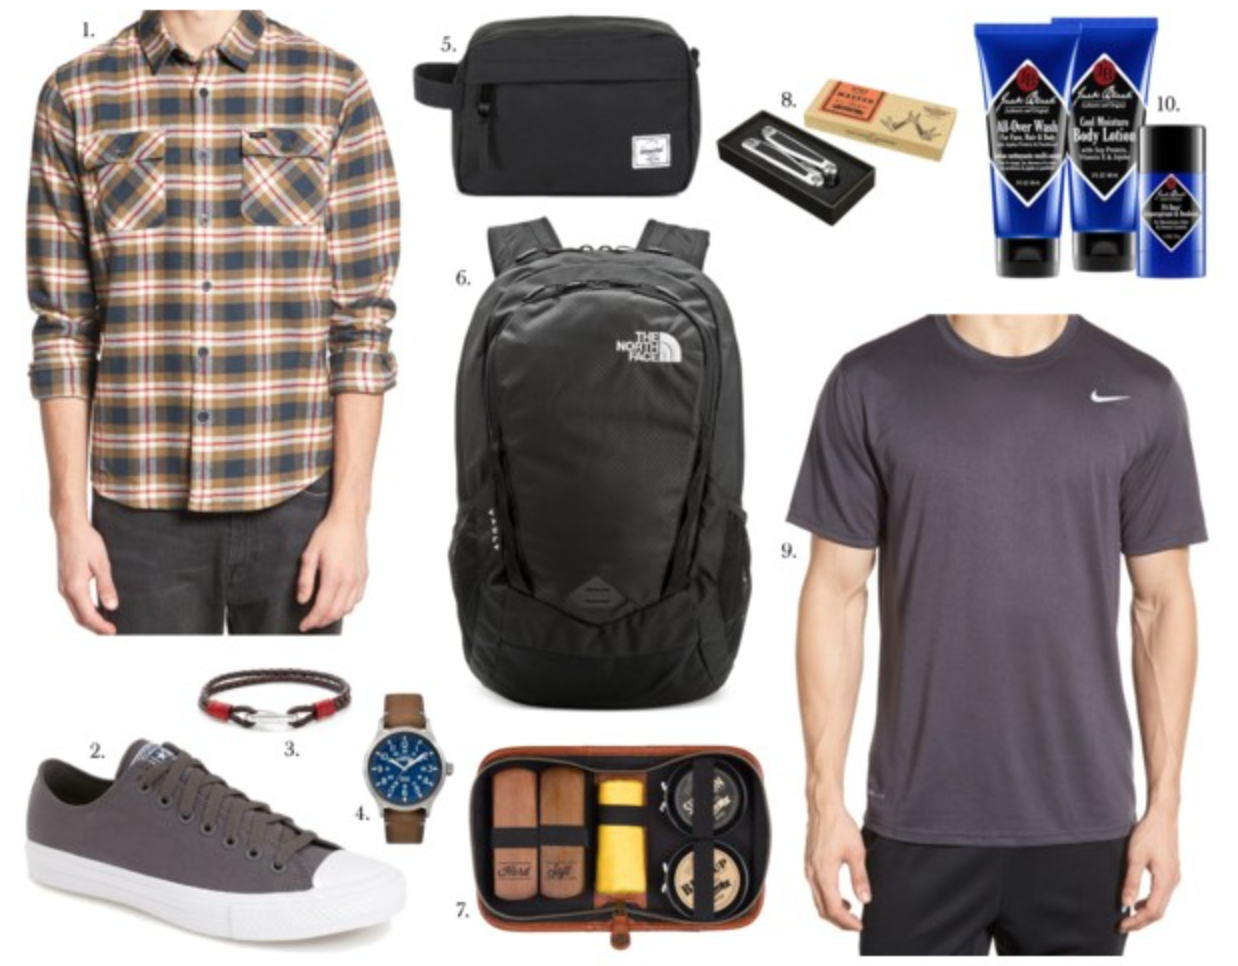 gifts for him under $50 2016